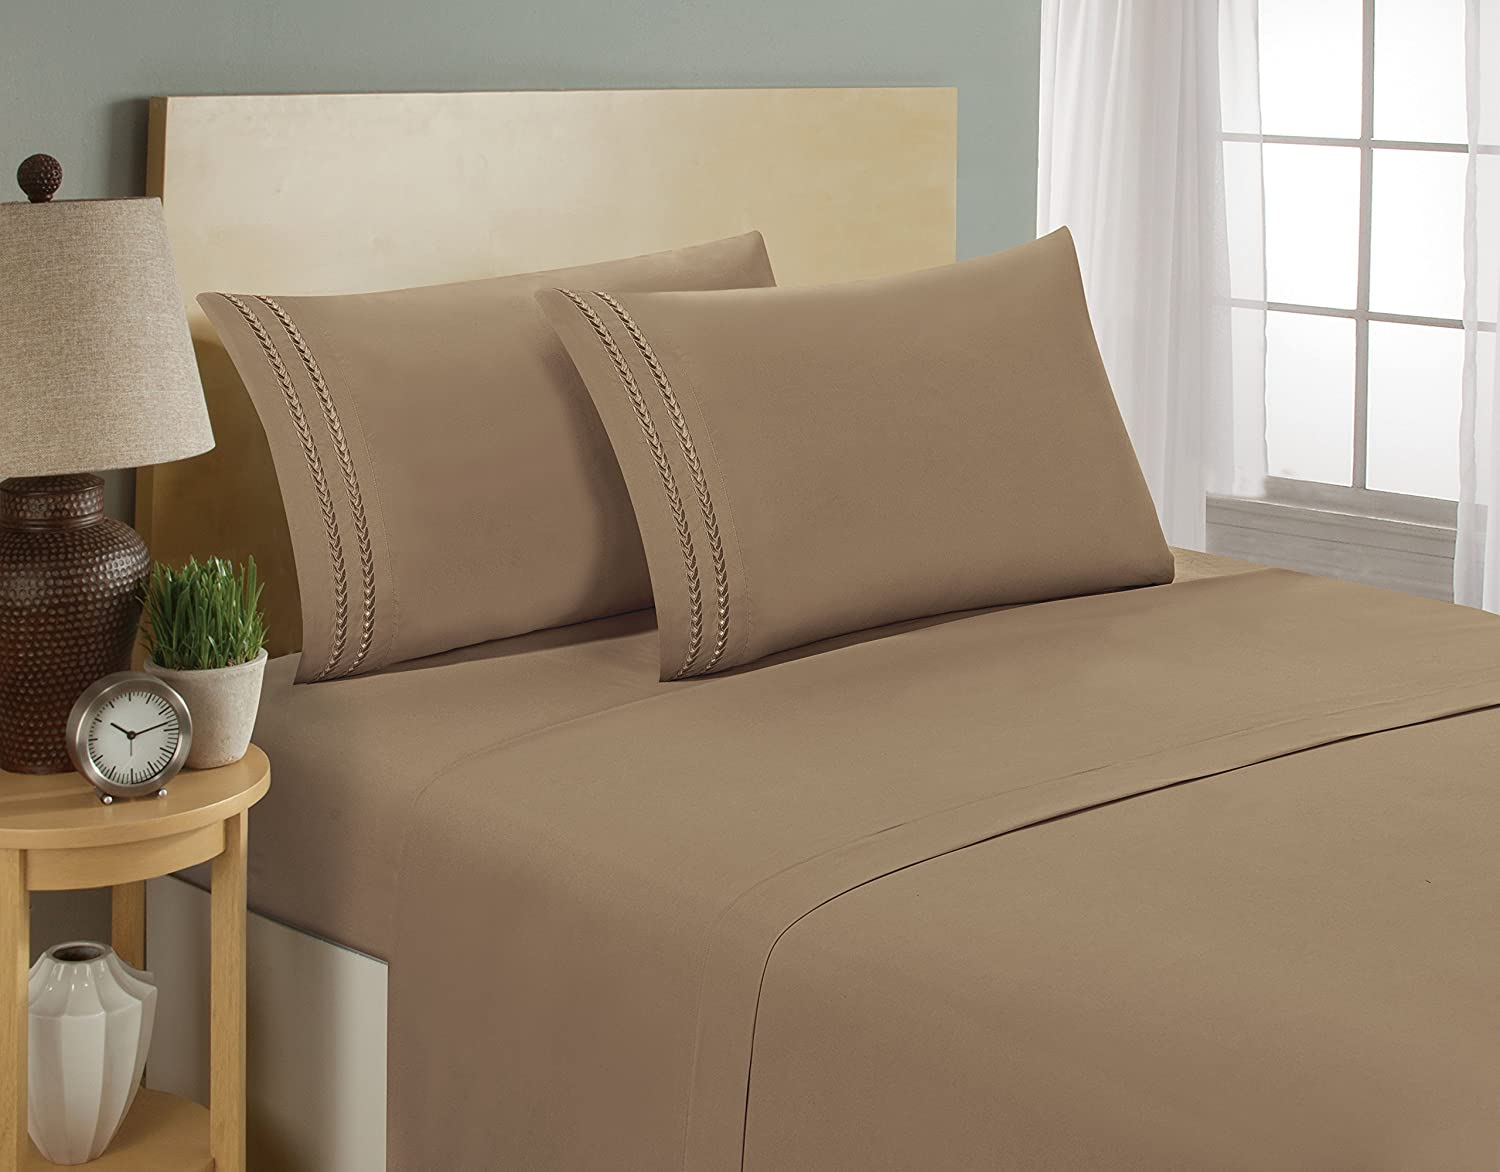 Grey Queen Elegant Comfort Three-Line Design 1500 Thread Count Egyptian Quality Wrinkle and Fade Resistant 4-Piece Bed Sheet set Luxury Bed Sheet Set on Deep Pocket